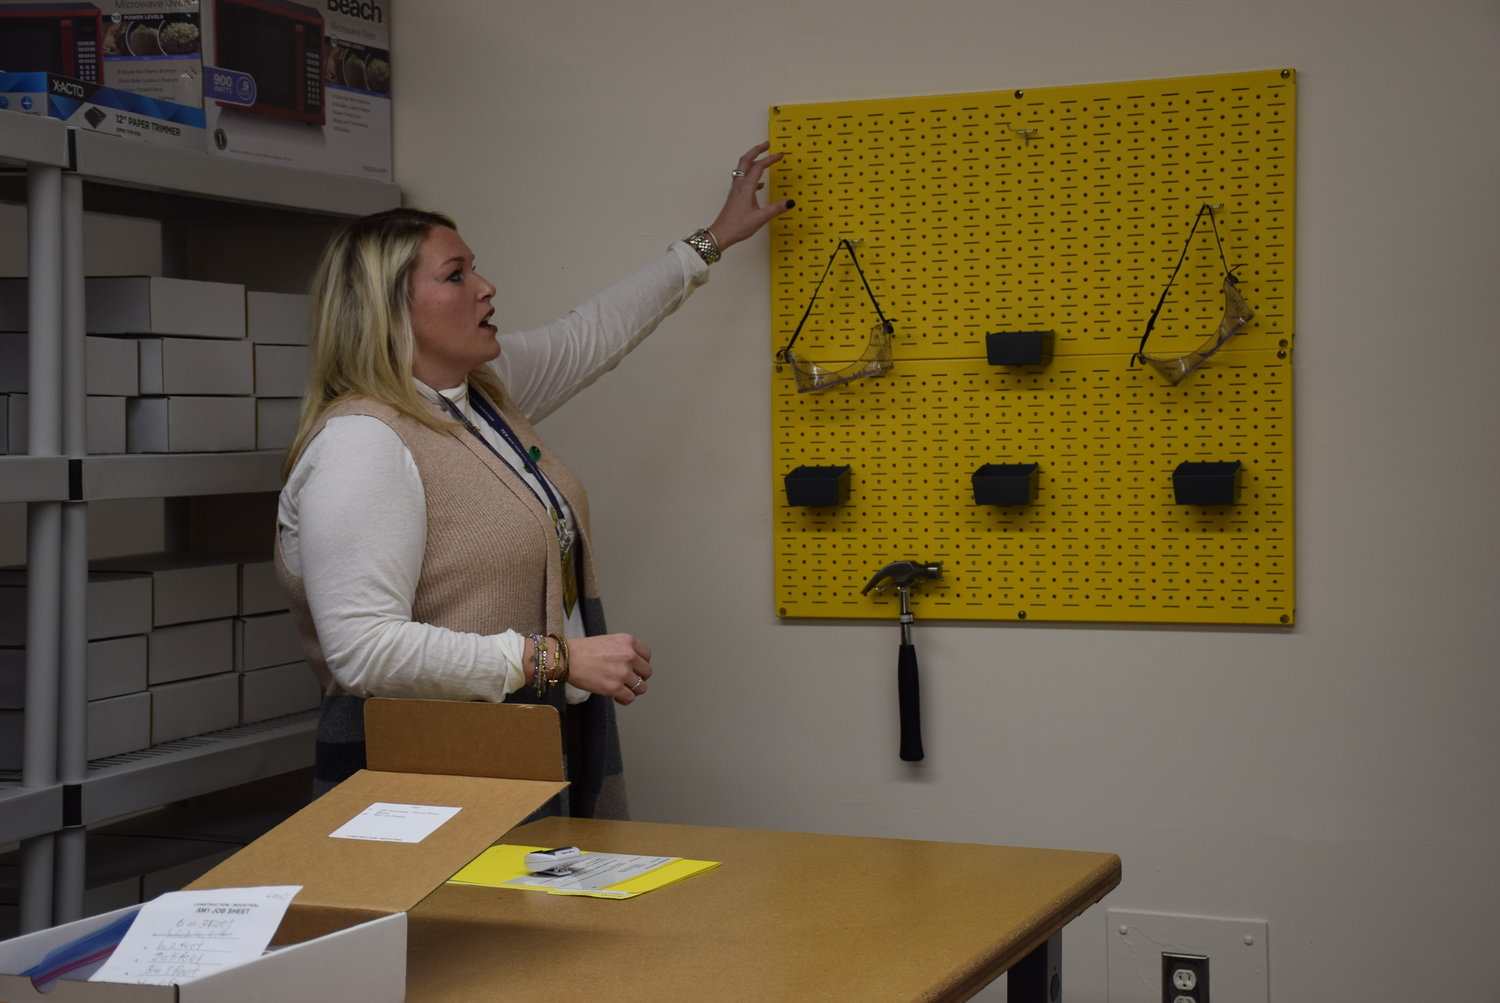 Sheila Dempsey, a special education teacher at West Hempstead High School, gave a tour of the new Practical Assessment Exploration System Lab after a ribbon-cutting ceremony on Jan. 21.